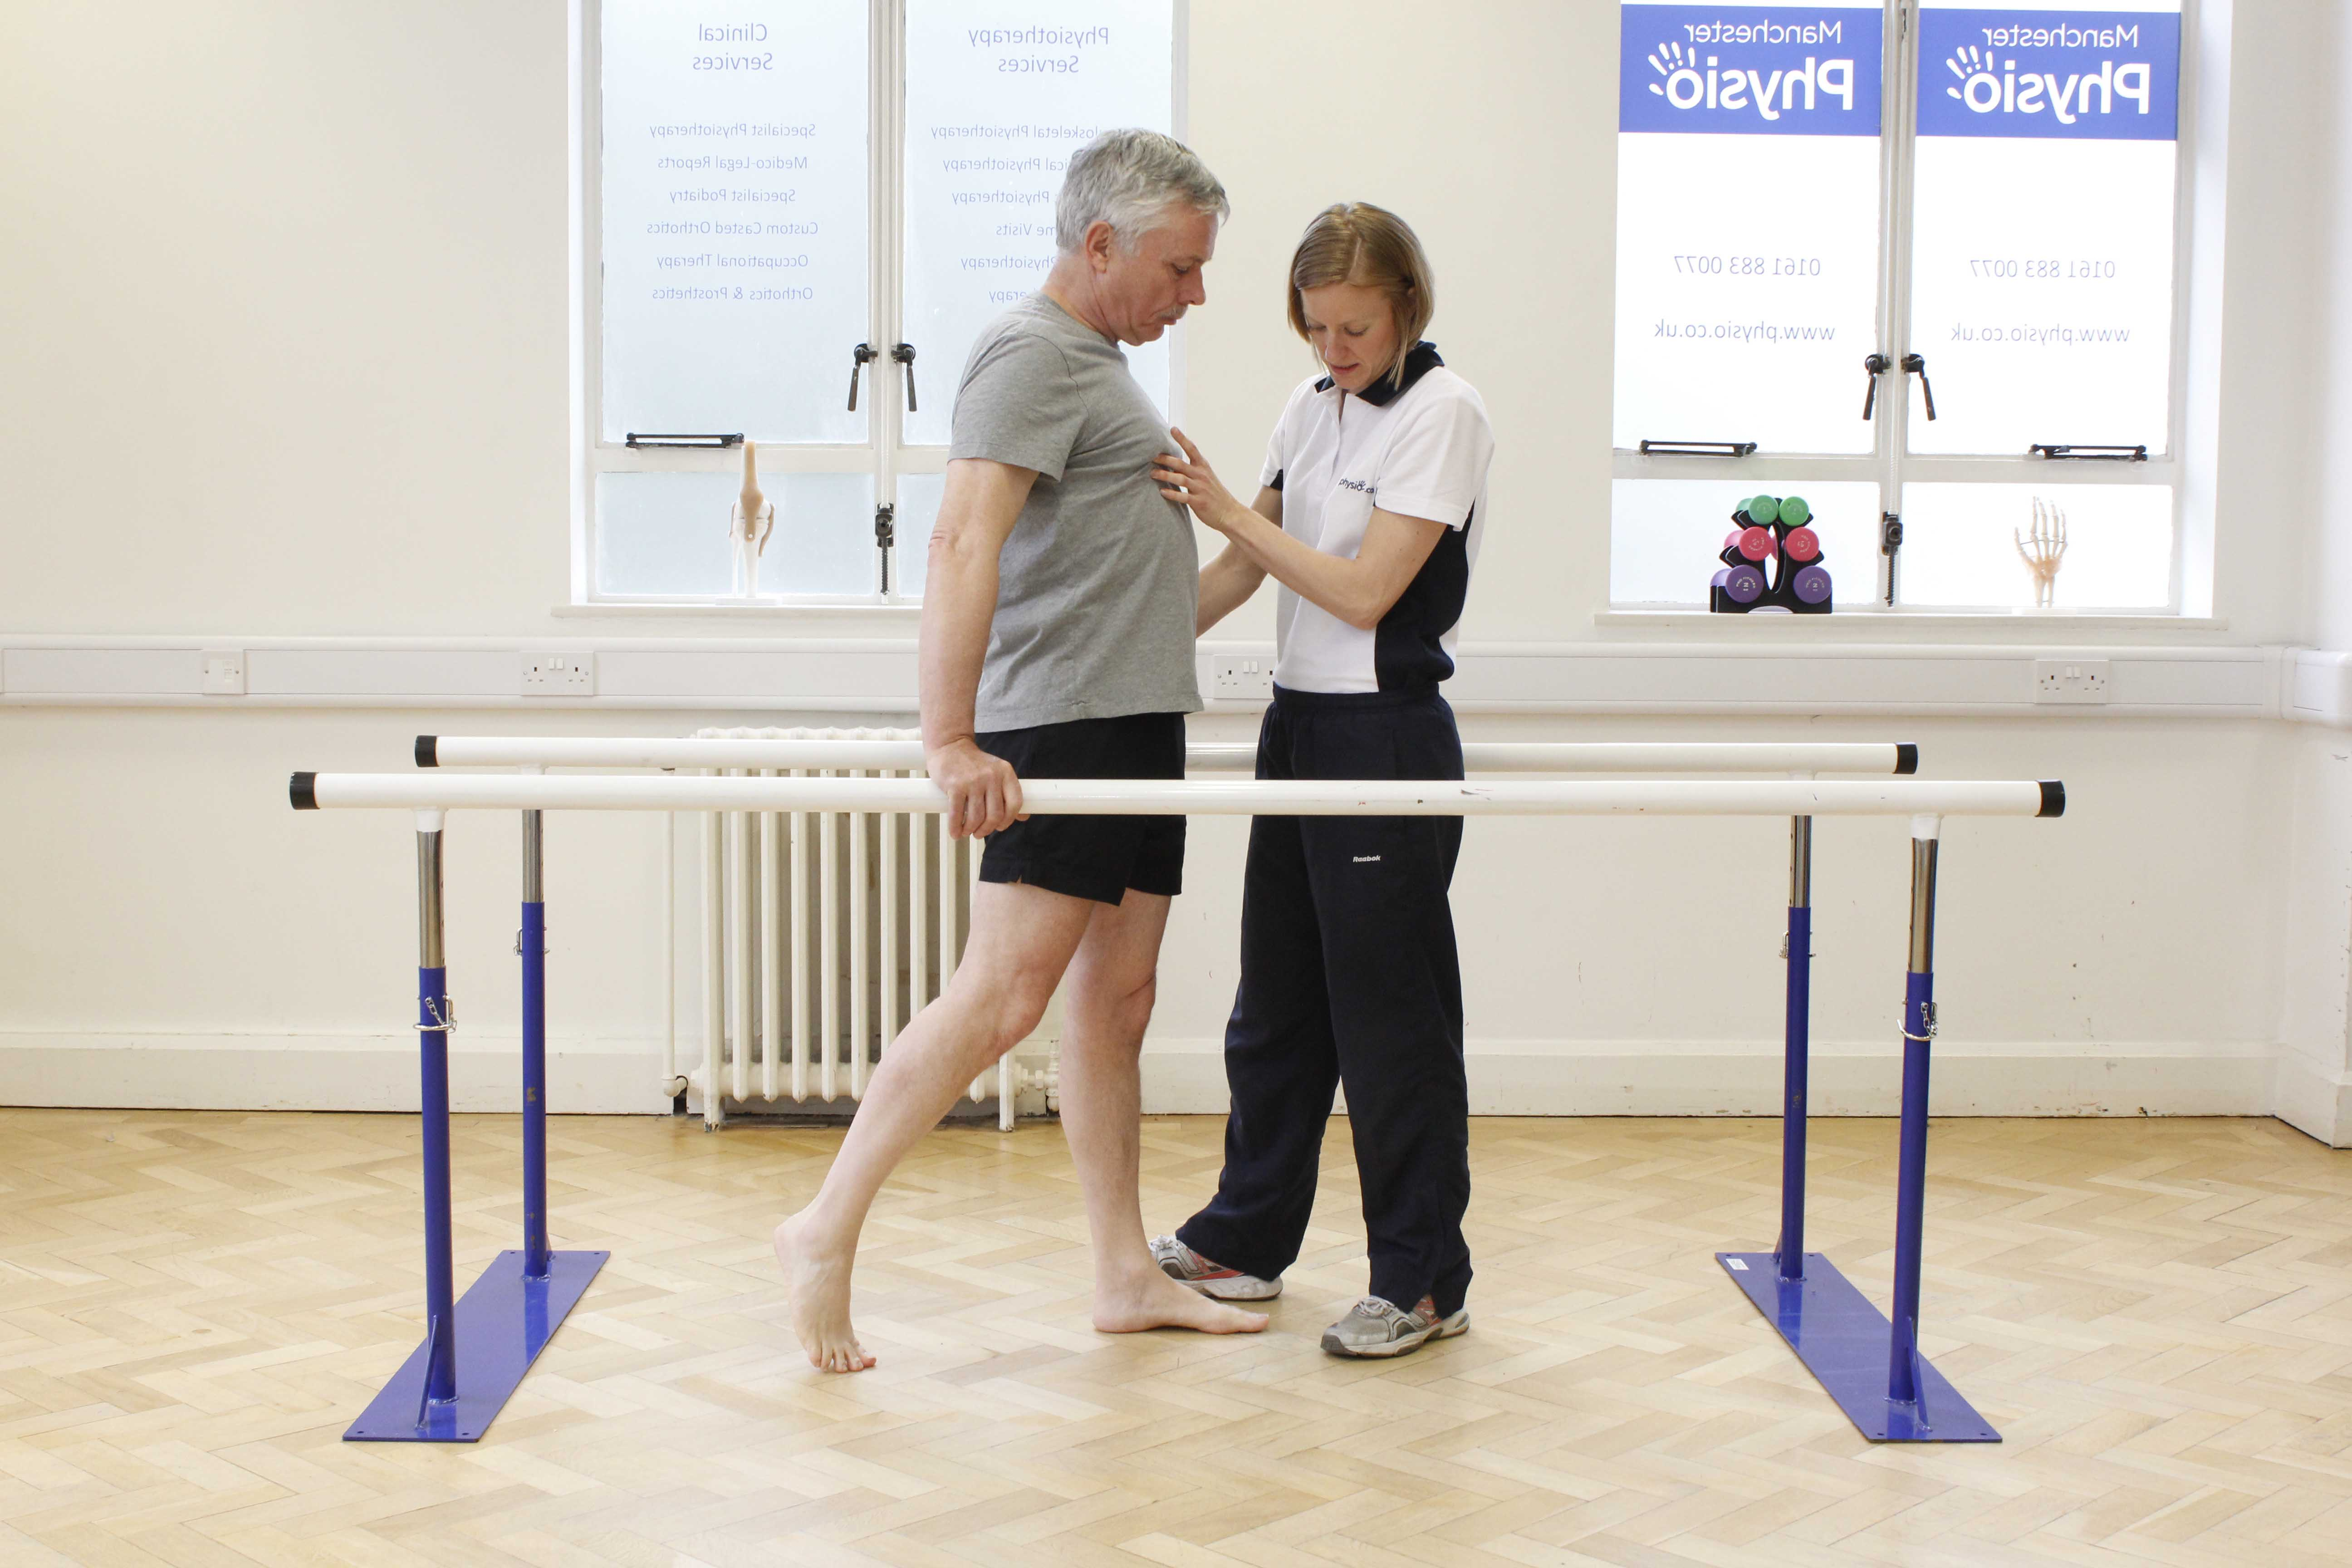 Mobility exercises between the parallel bars under supervision of a neurological physiotherapist